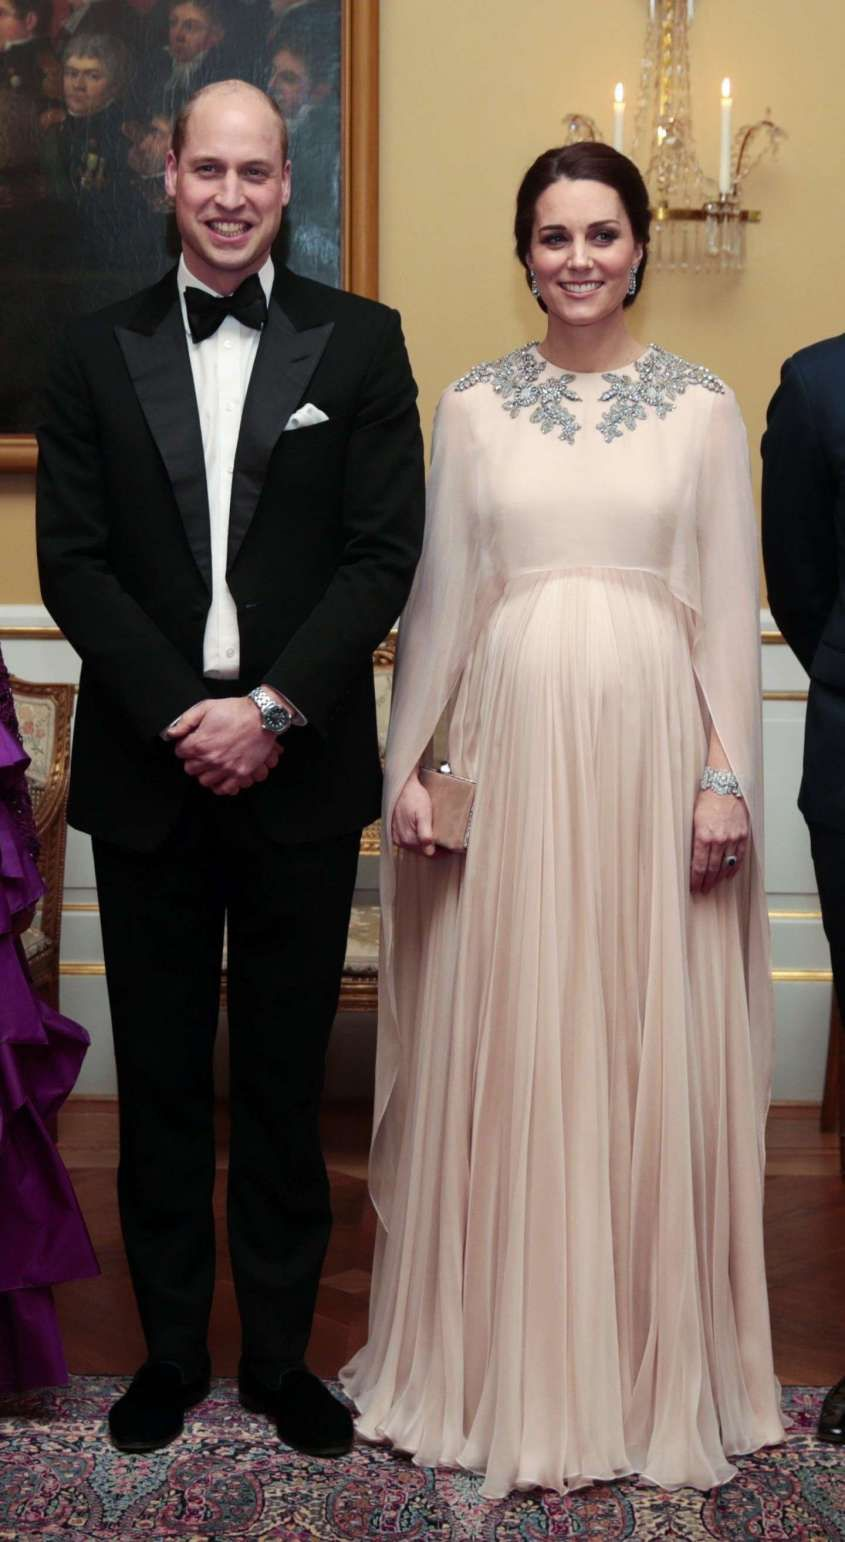 Abiti Eleganti Kate Middleton.Kate Middleton E Meghan Markle Look A Confronto Duchessa Kate